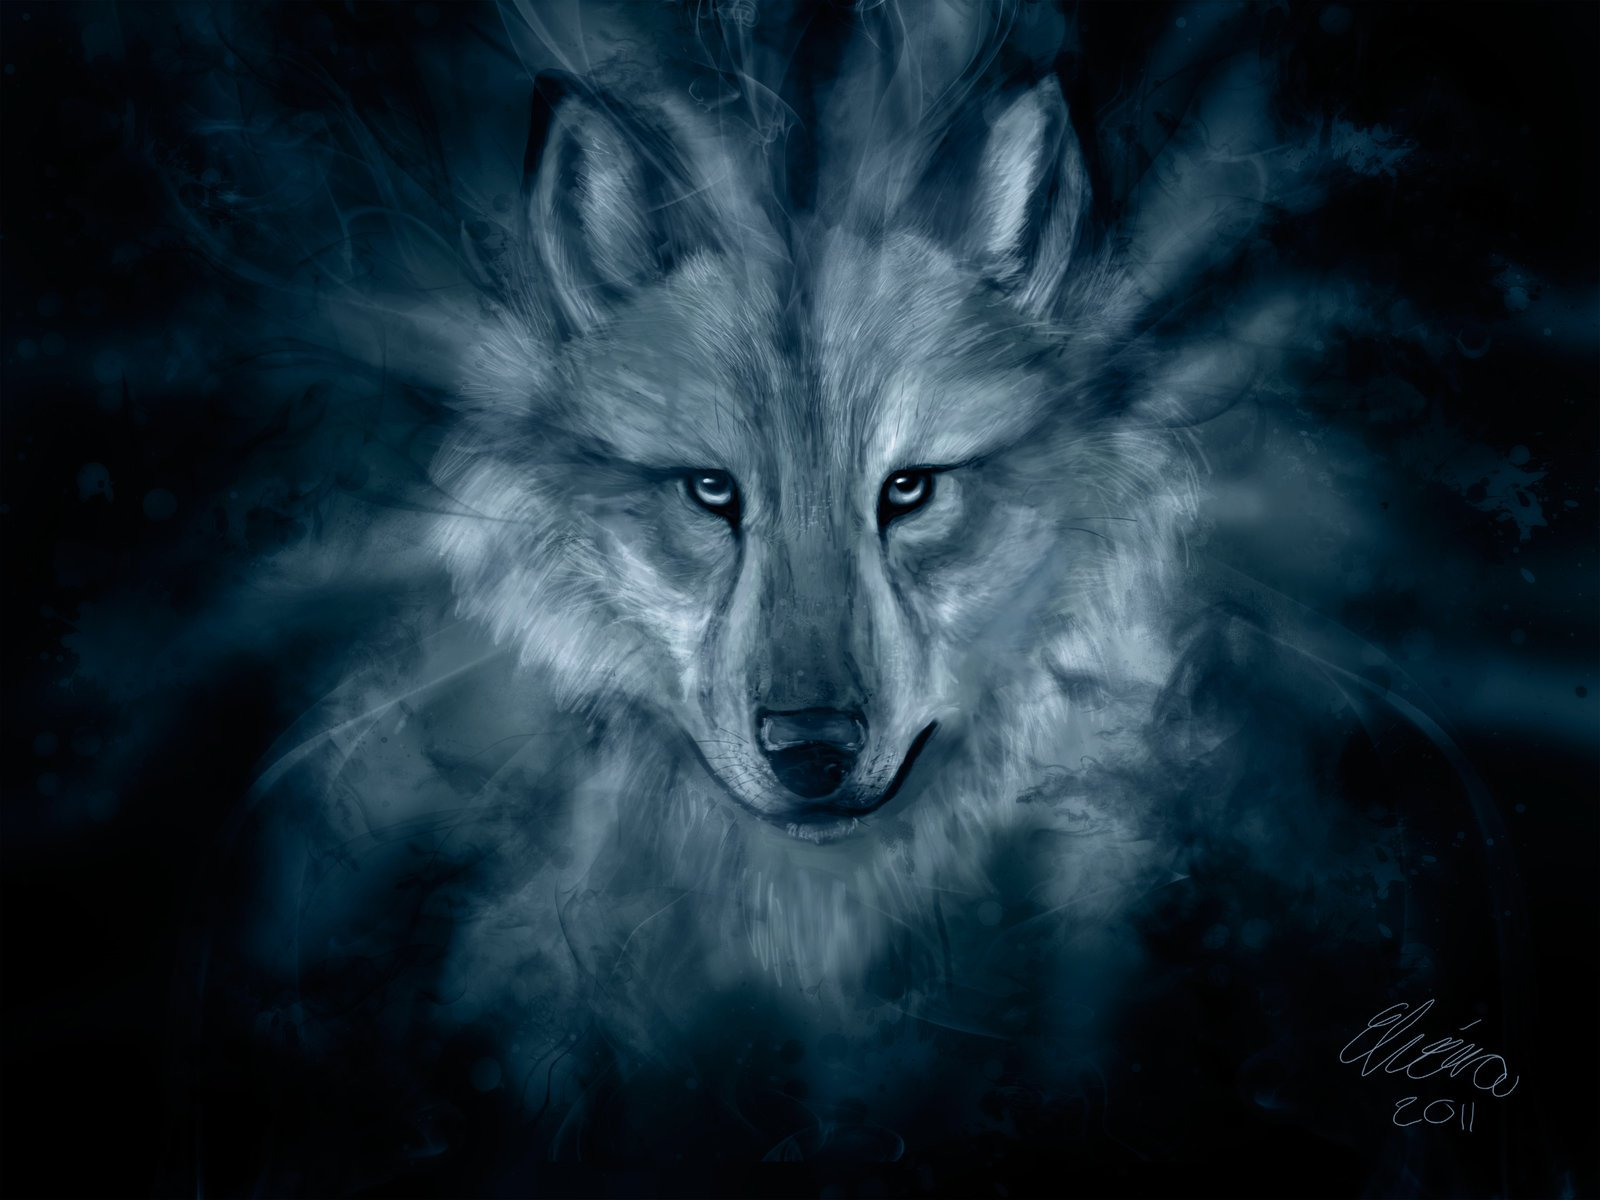 Hd wallpaper wolf - Download Wolf Spirit Hd Wallpaper By Wolfhowl10 2685 Full Size